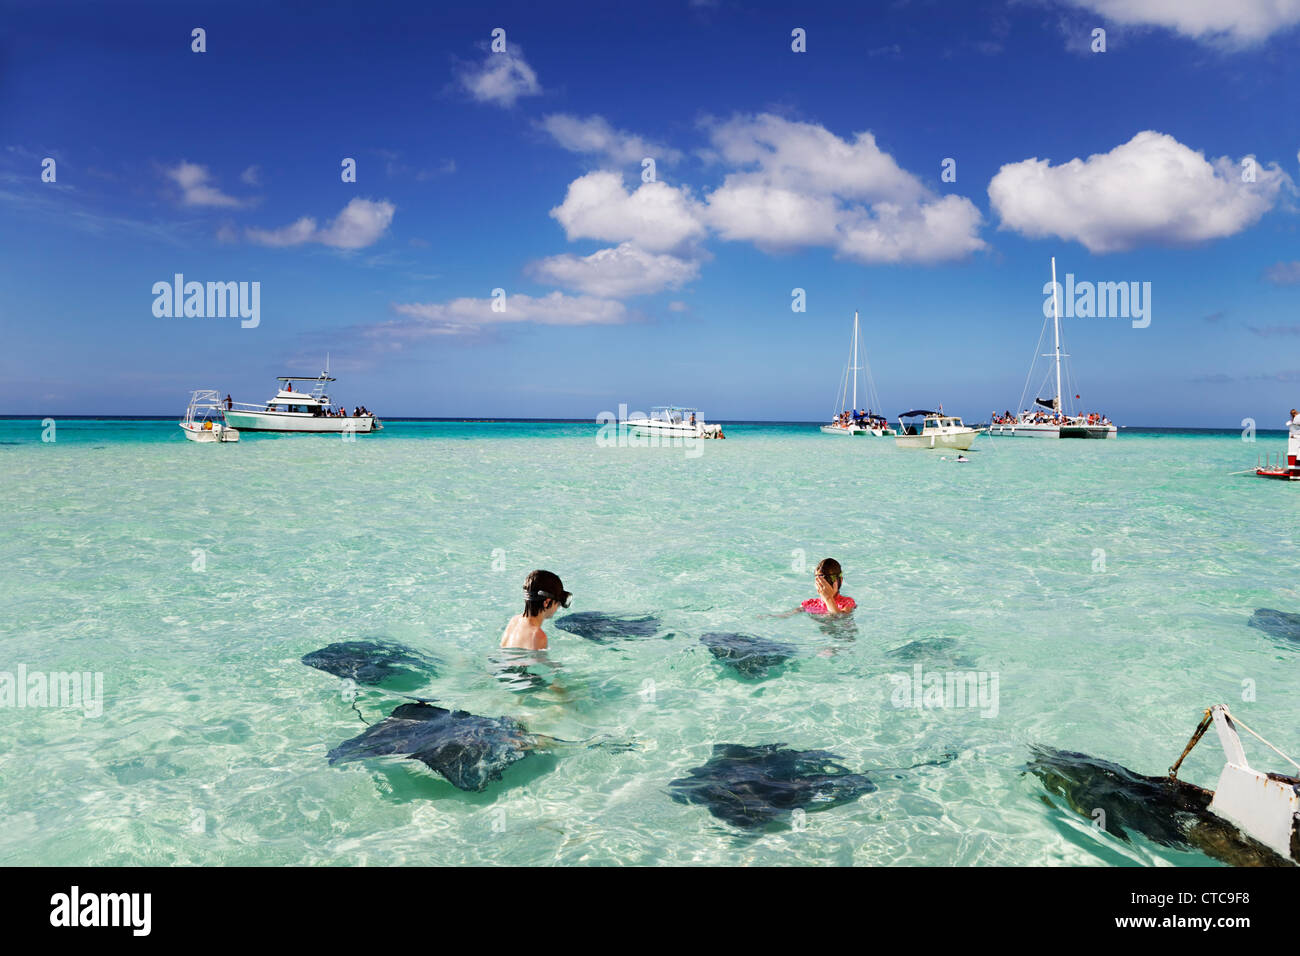 Brother & sister enjoy playing with the stingrays at the sandbar off Grand Cayman - Stock Image